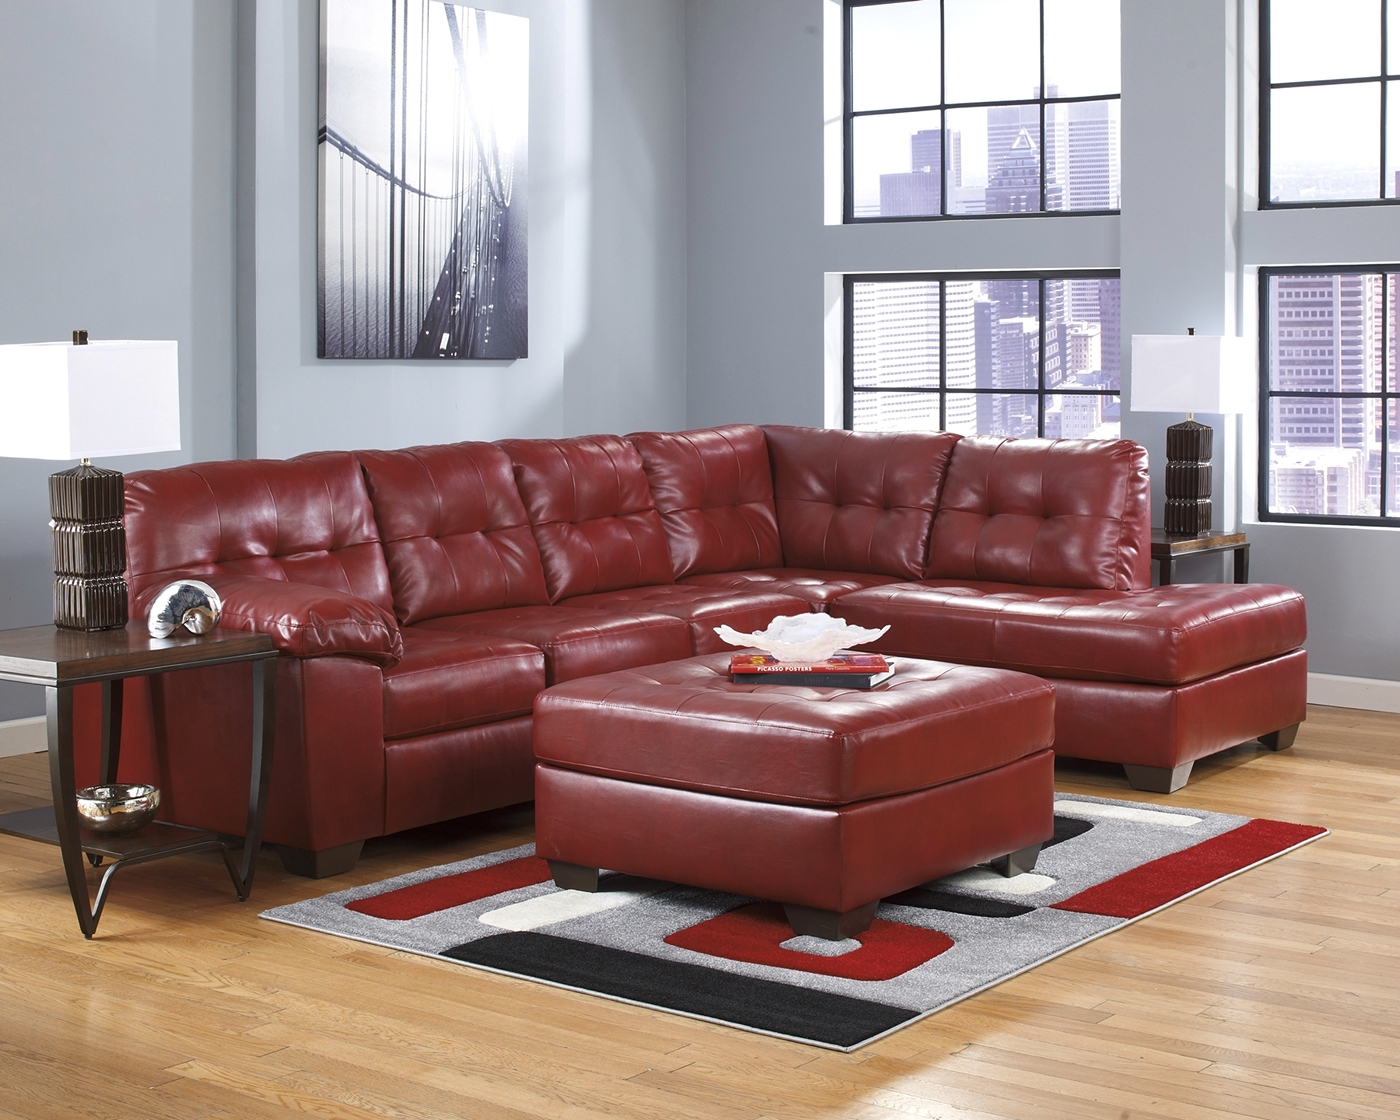 Red SectionalRed Bonded Leather SofaShop Factory Direct